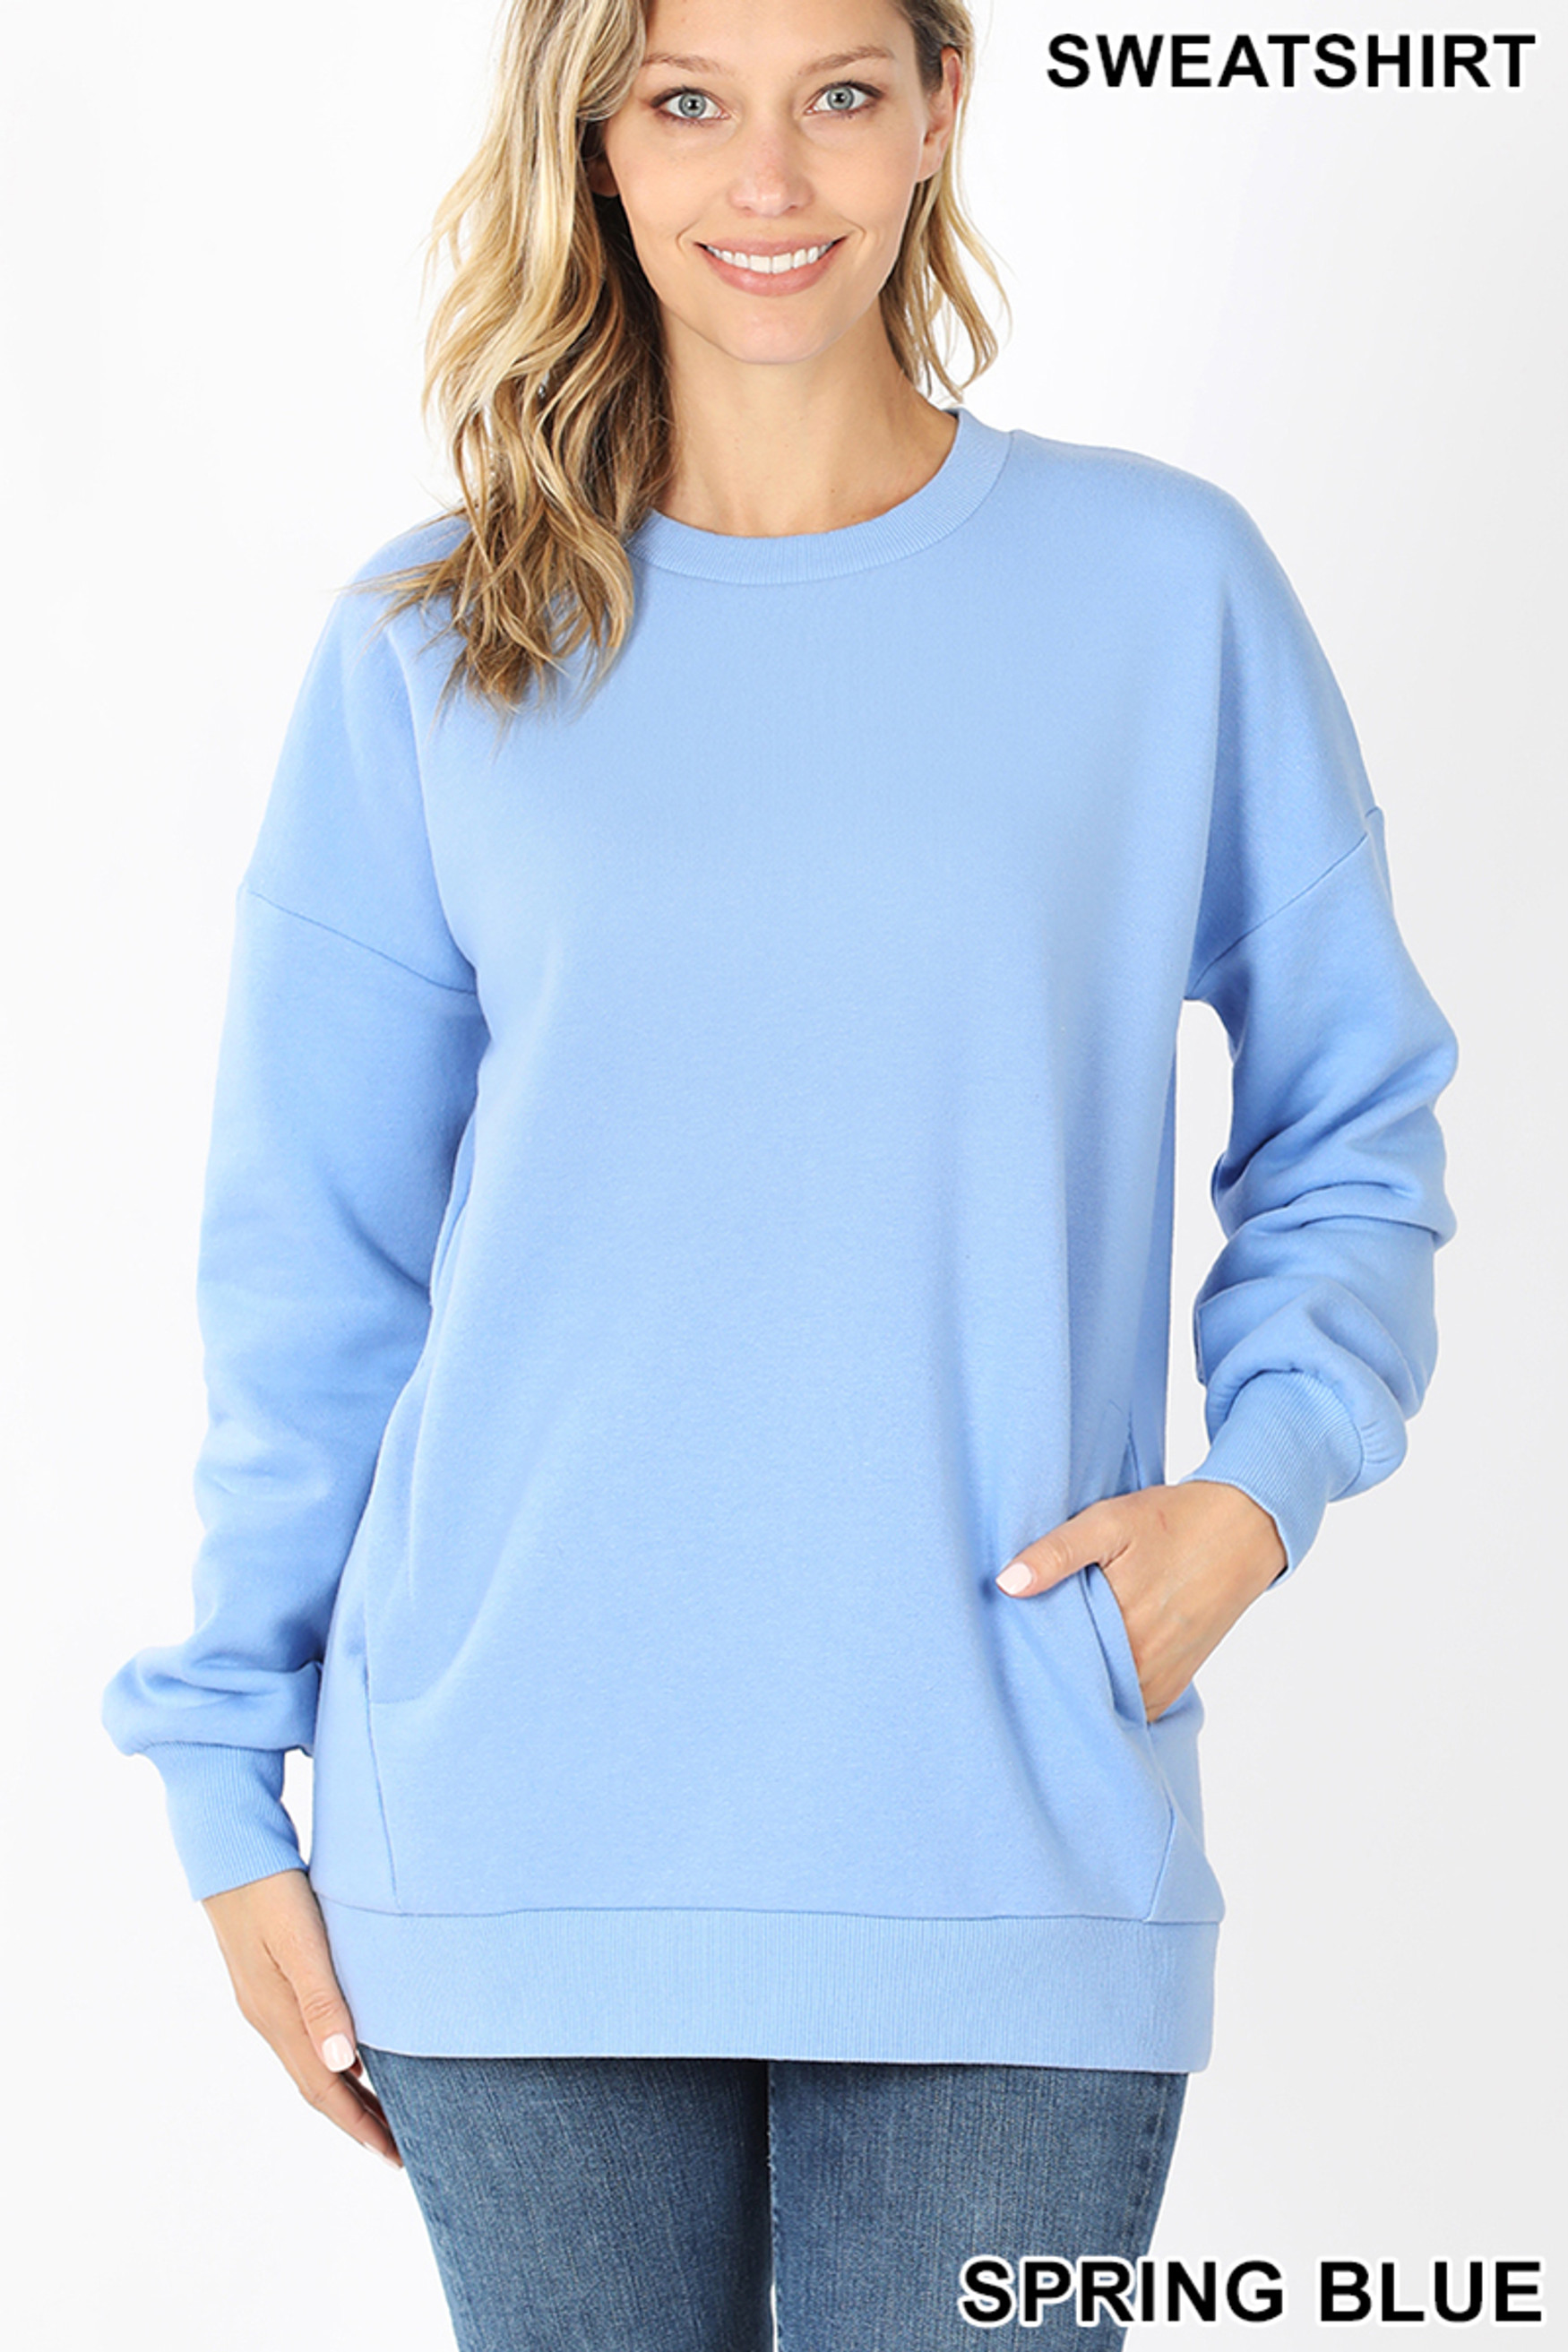 Round Crew Neck Sweatshirt with Side Pockets